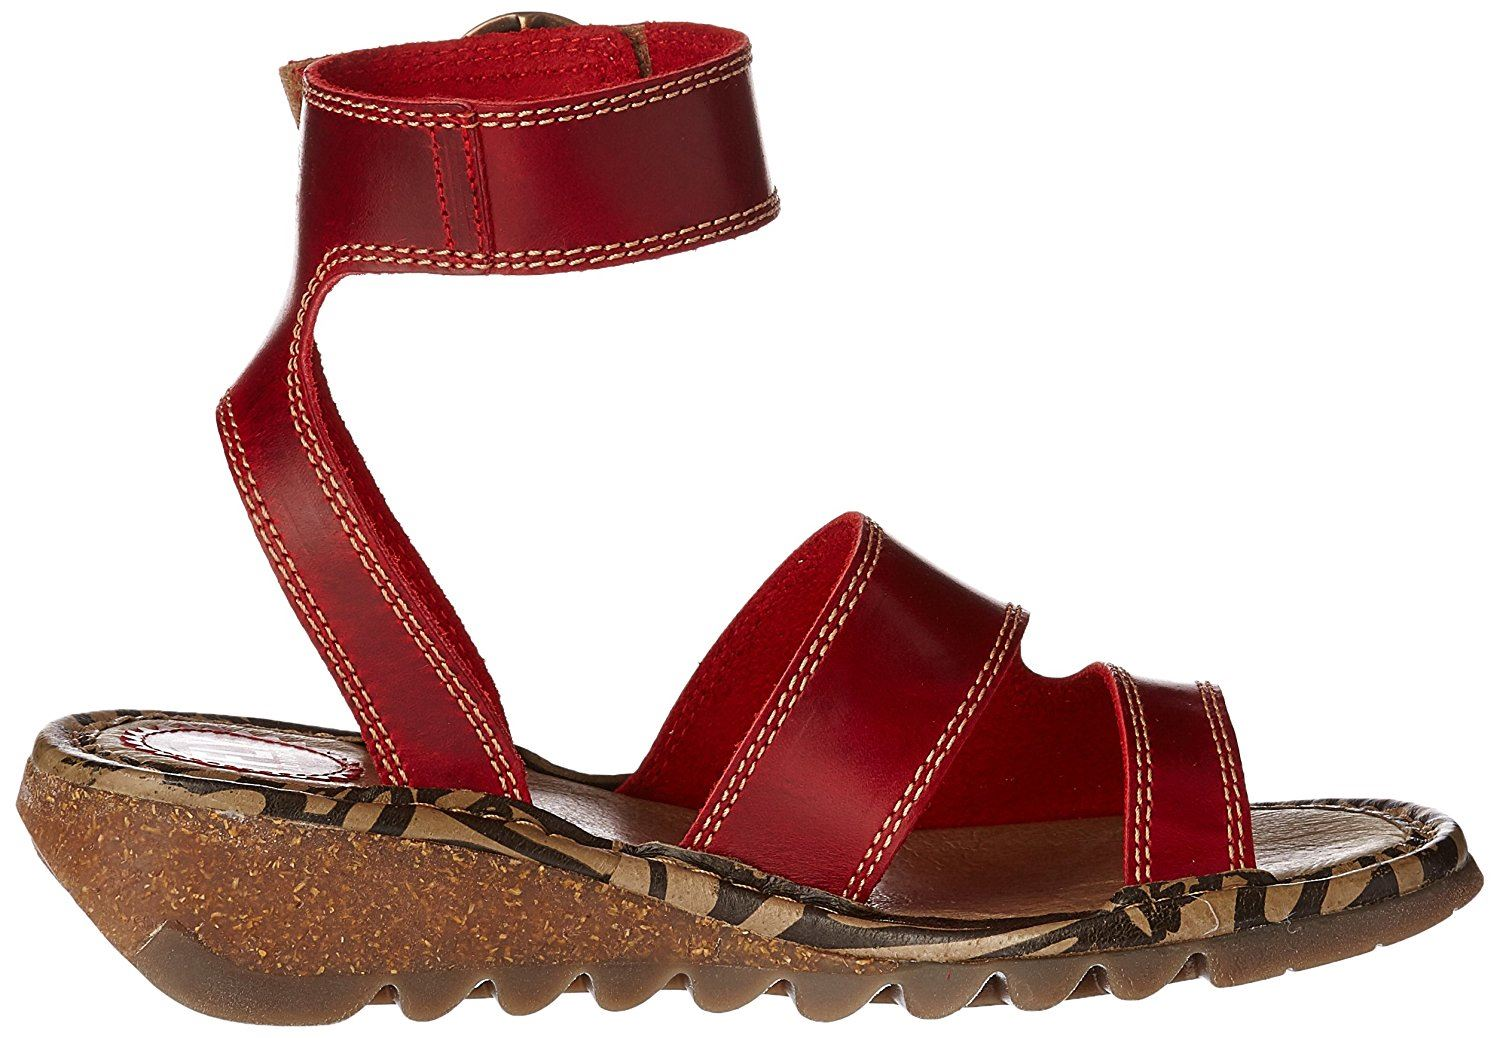 Fly-London-TILY722FLY-Ladies-Strappy-Gladiator-Style-Leather-Wedge-Sandals thumbnail 21